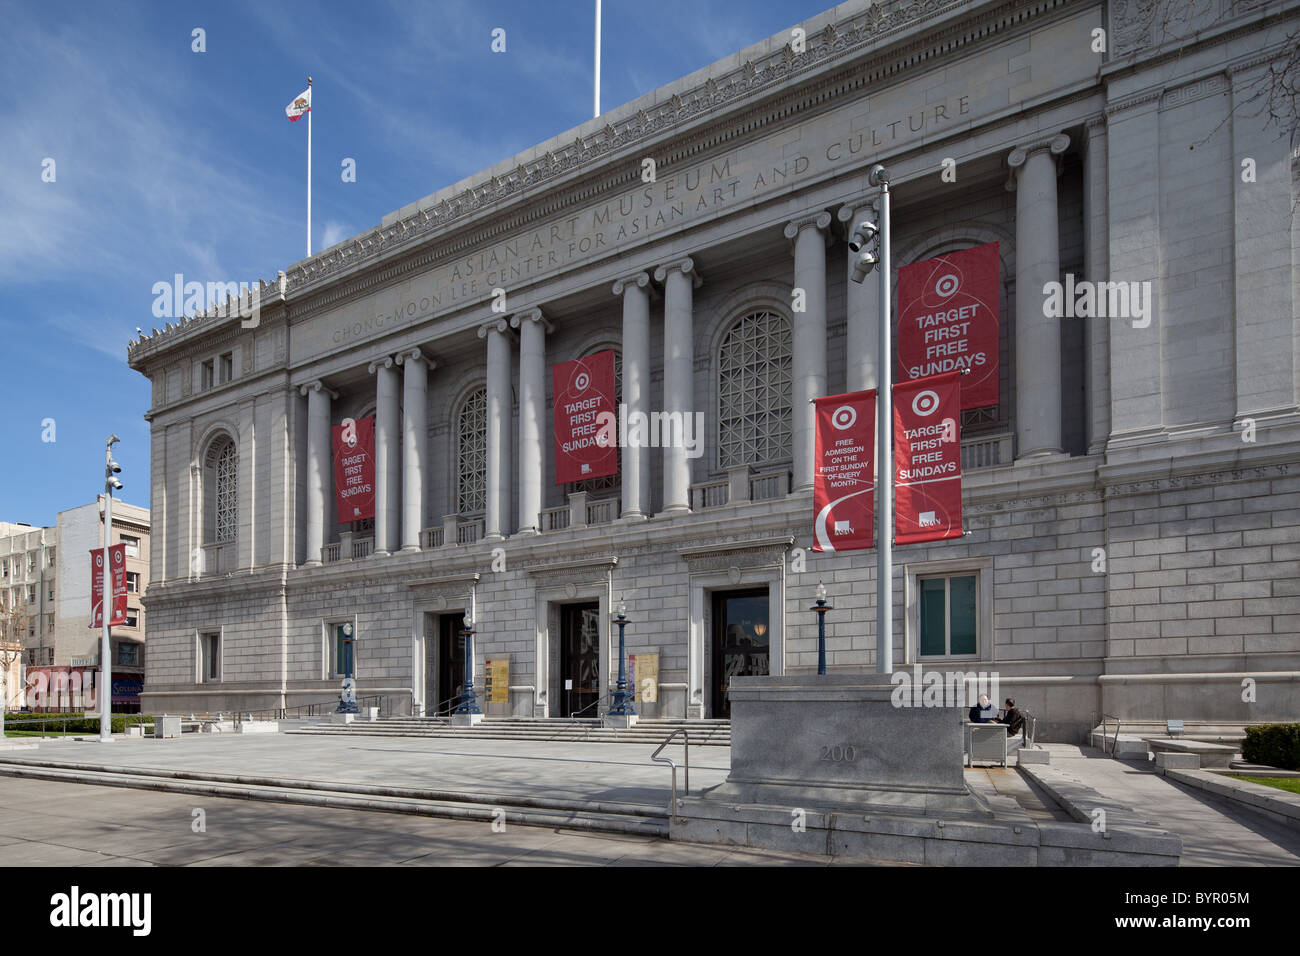 The Asian Art Museum in San Francisco's Civic Center plaza. - Stock Image